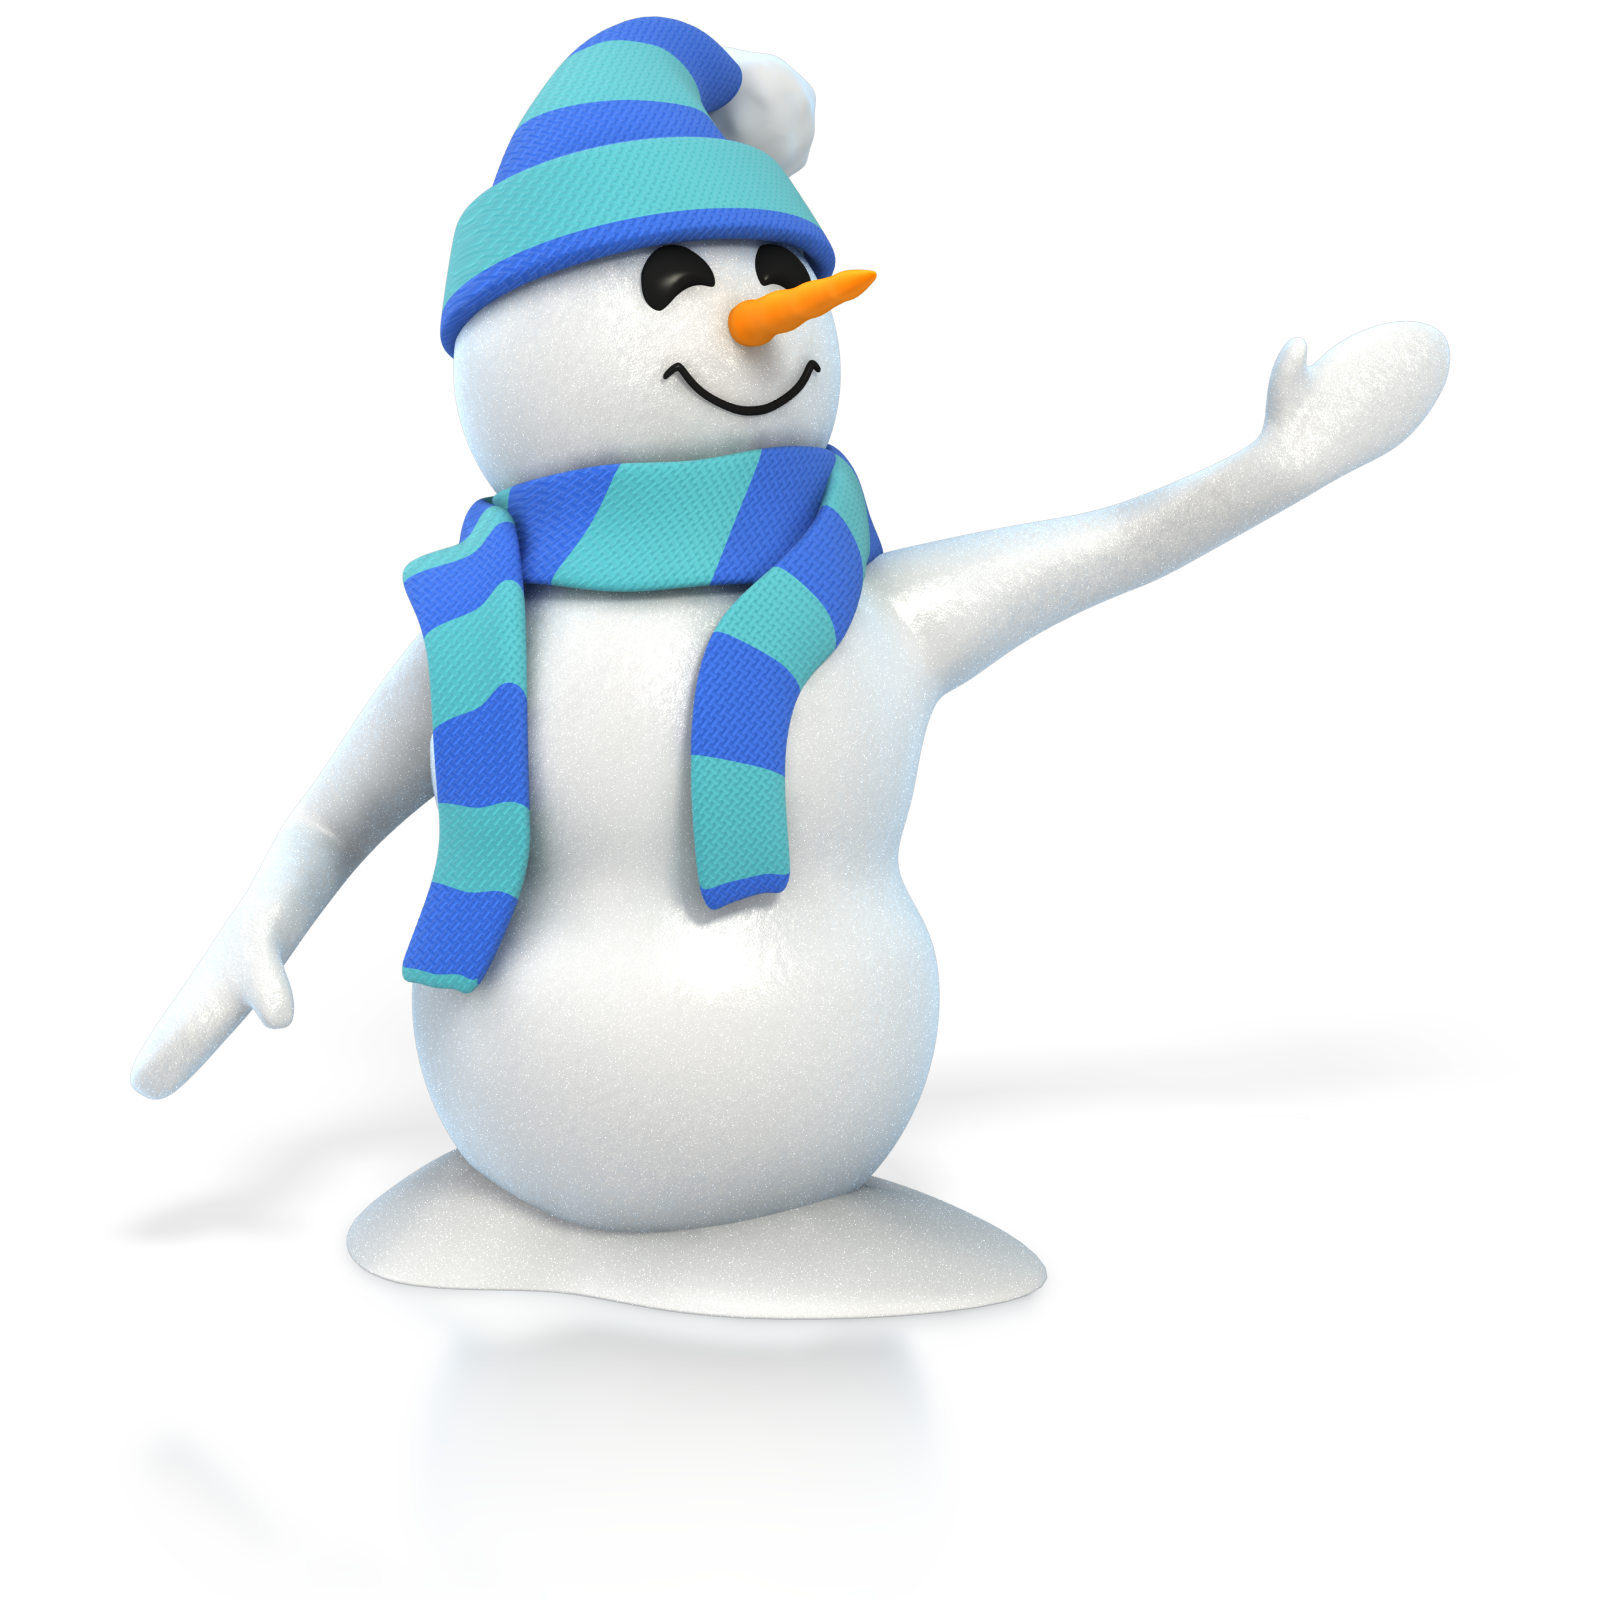 Sunglasses clipart snowman. Png available in different